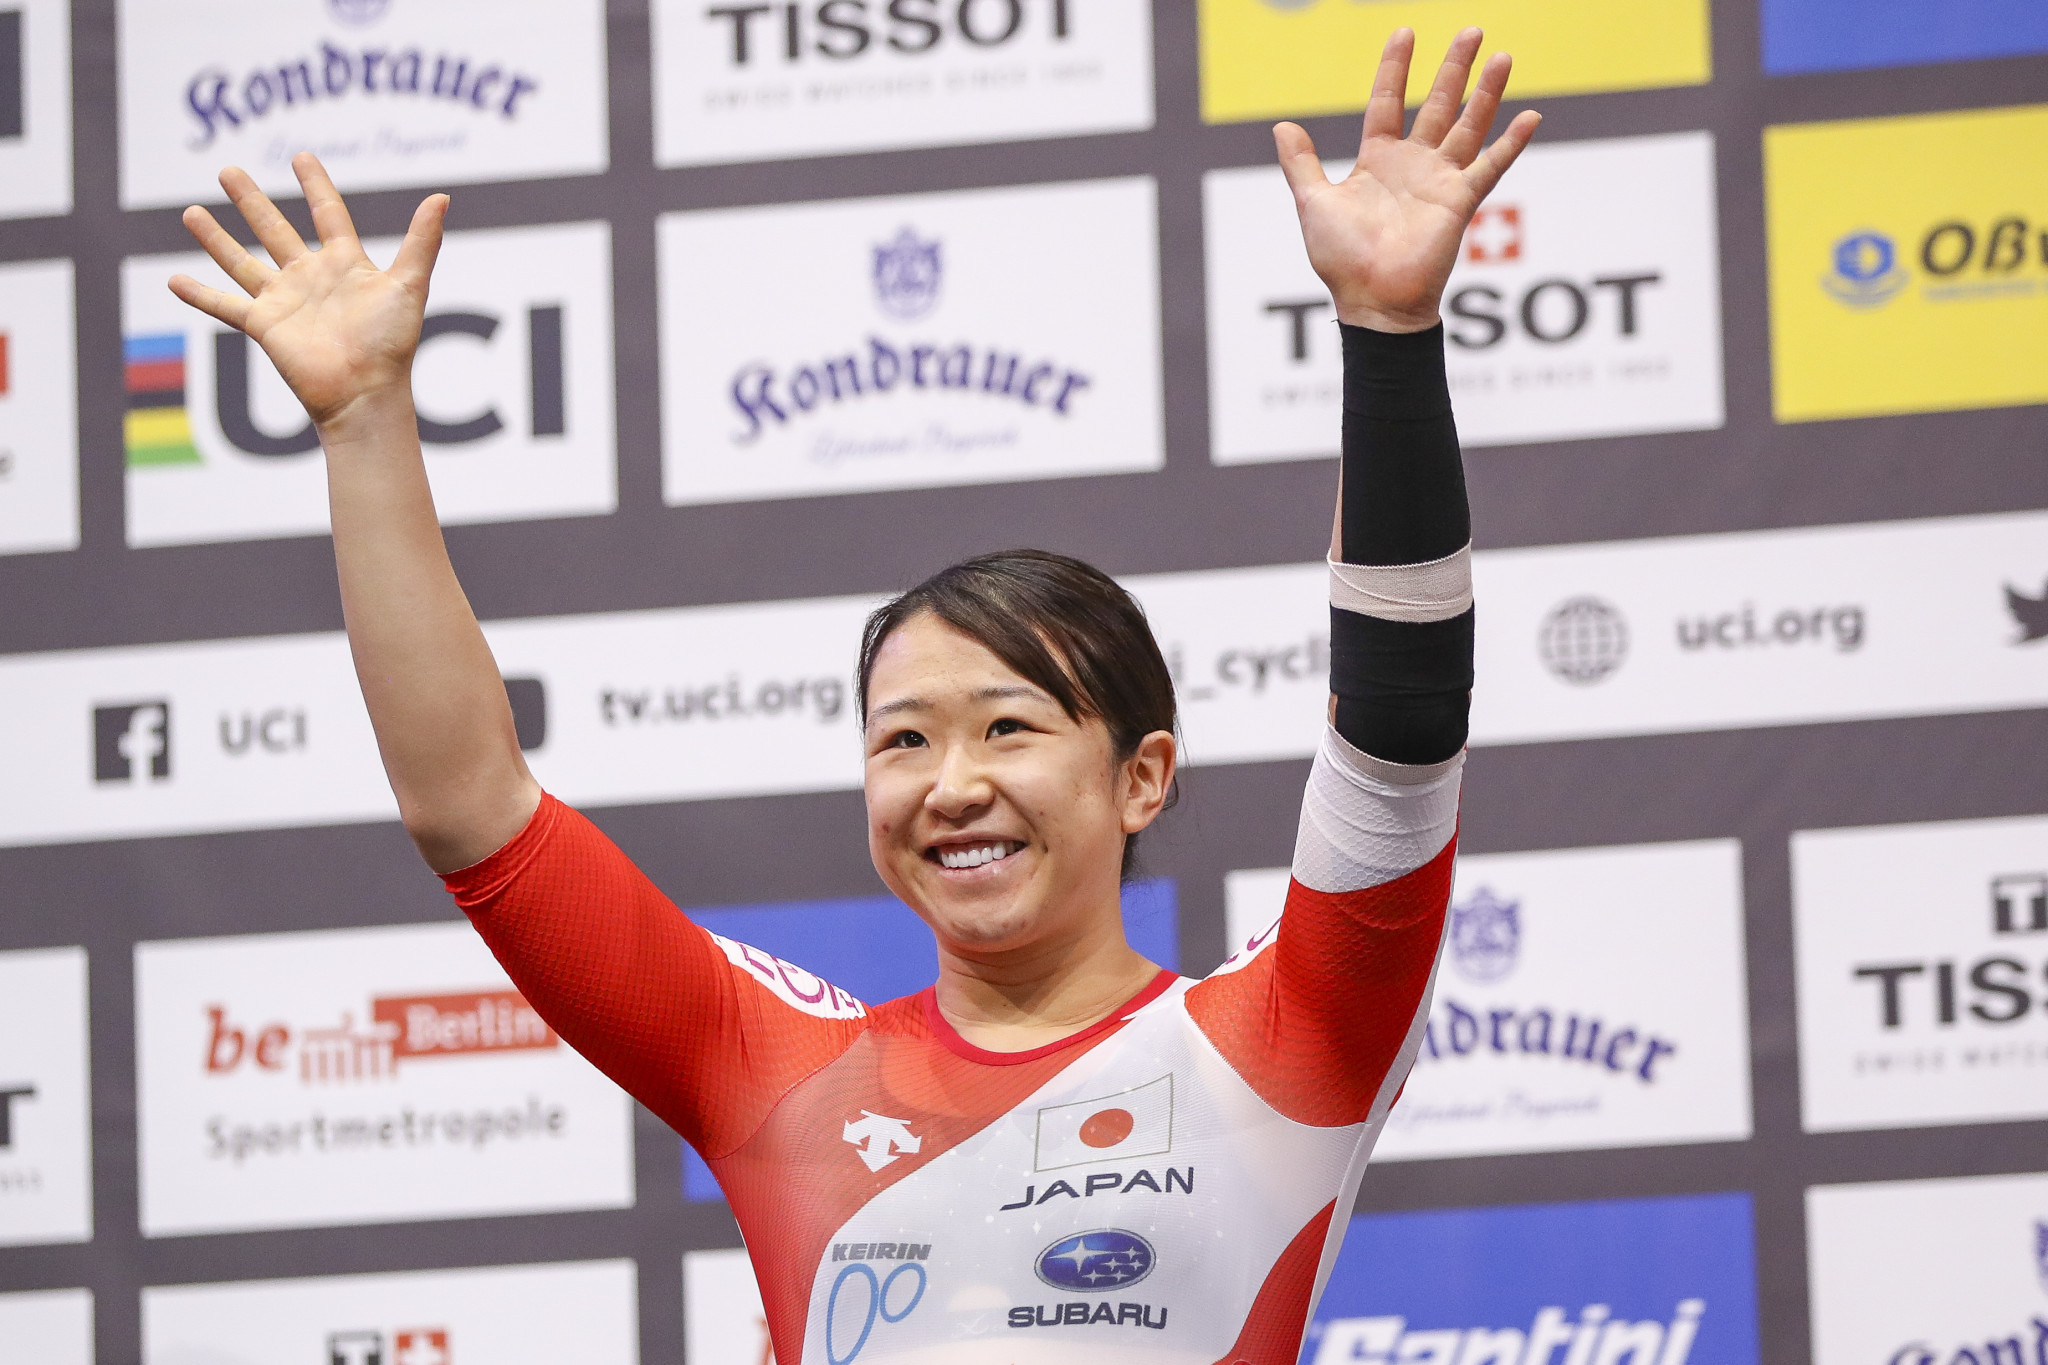 World champion Kajihara wins omnium at Track Cycling Nations Cup in Hong Kong